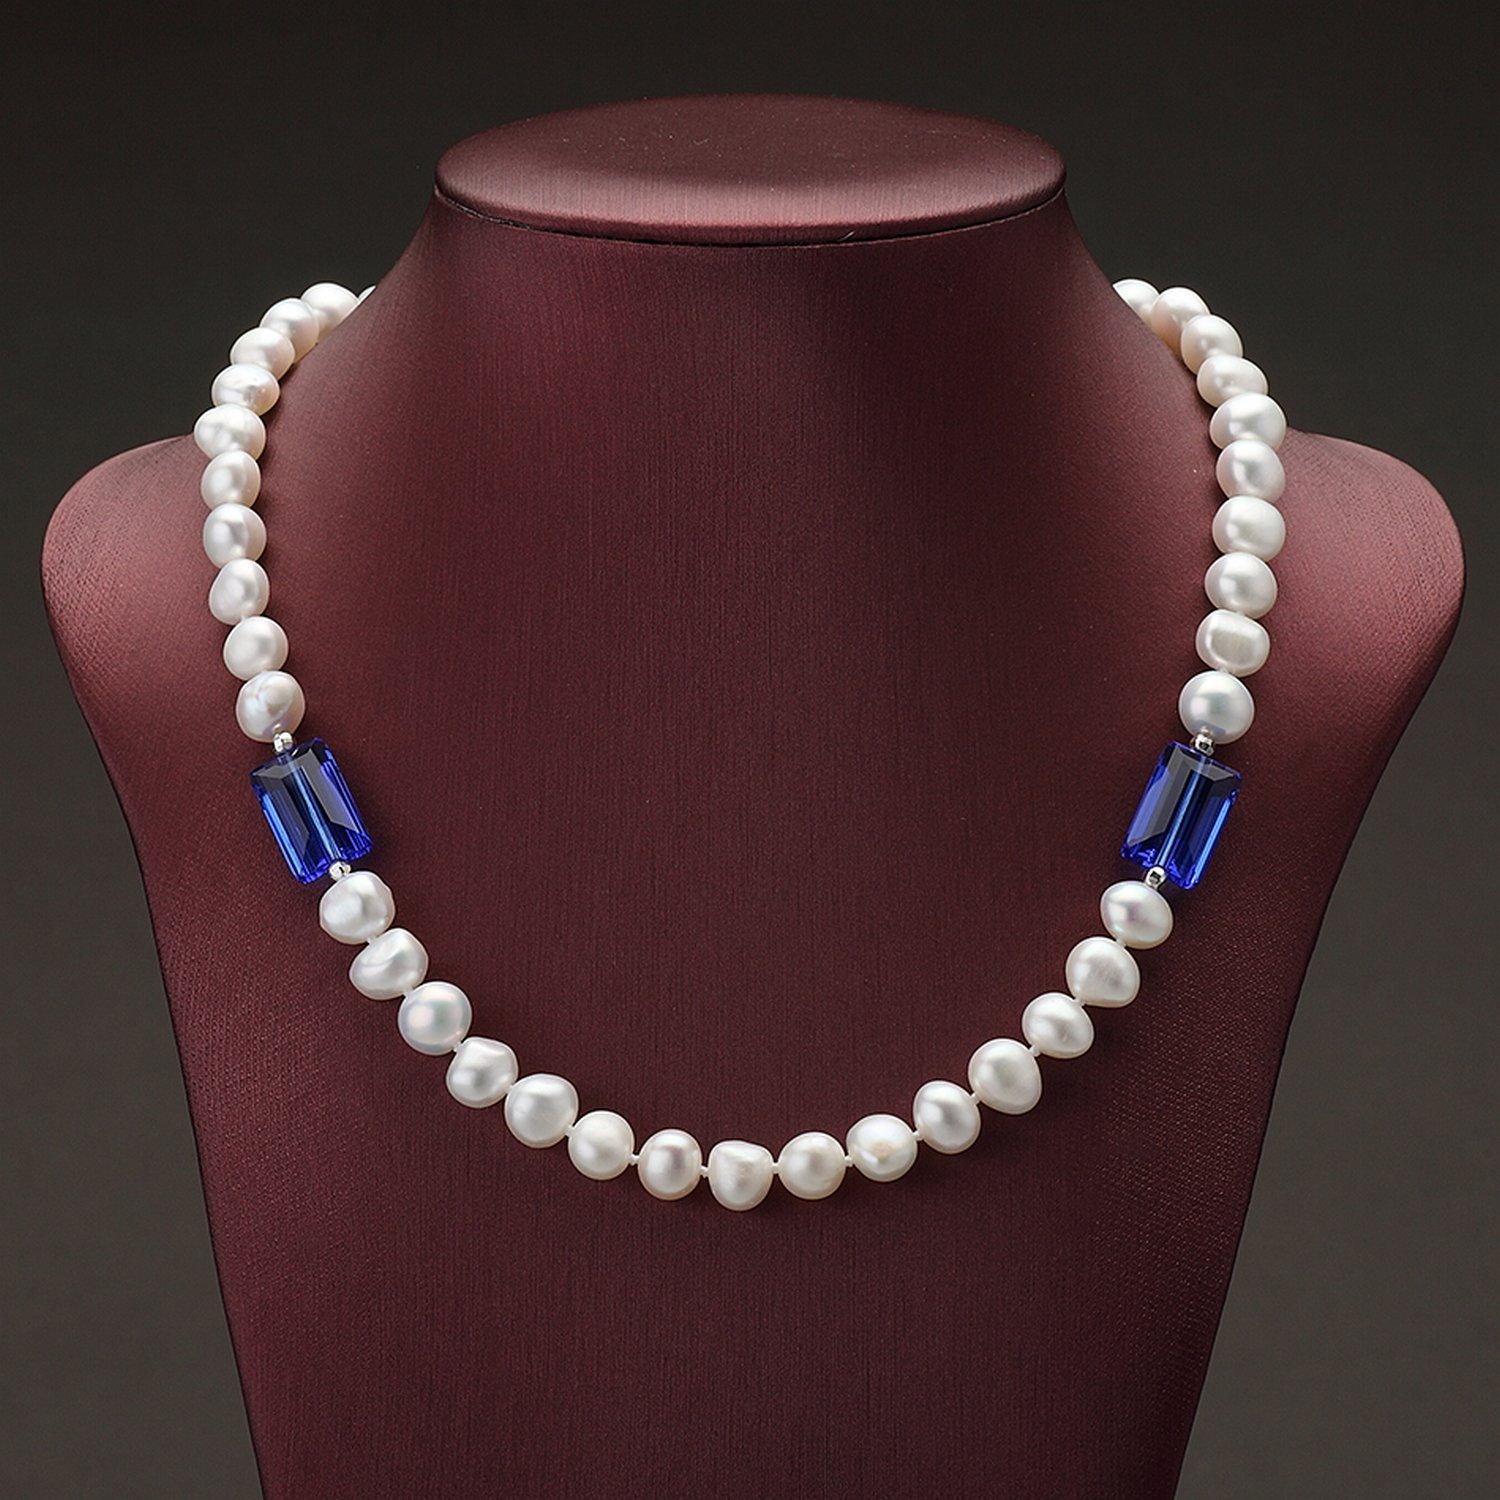 MMC Womens Necklaces Pendants Baroque Style Pearl Blue Crystal Silver Jewelry